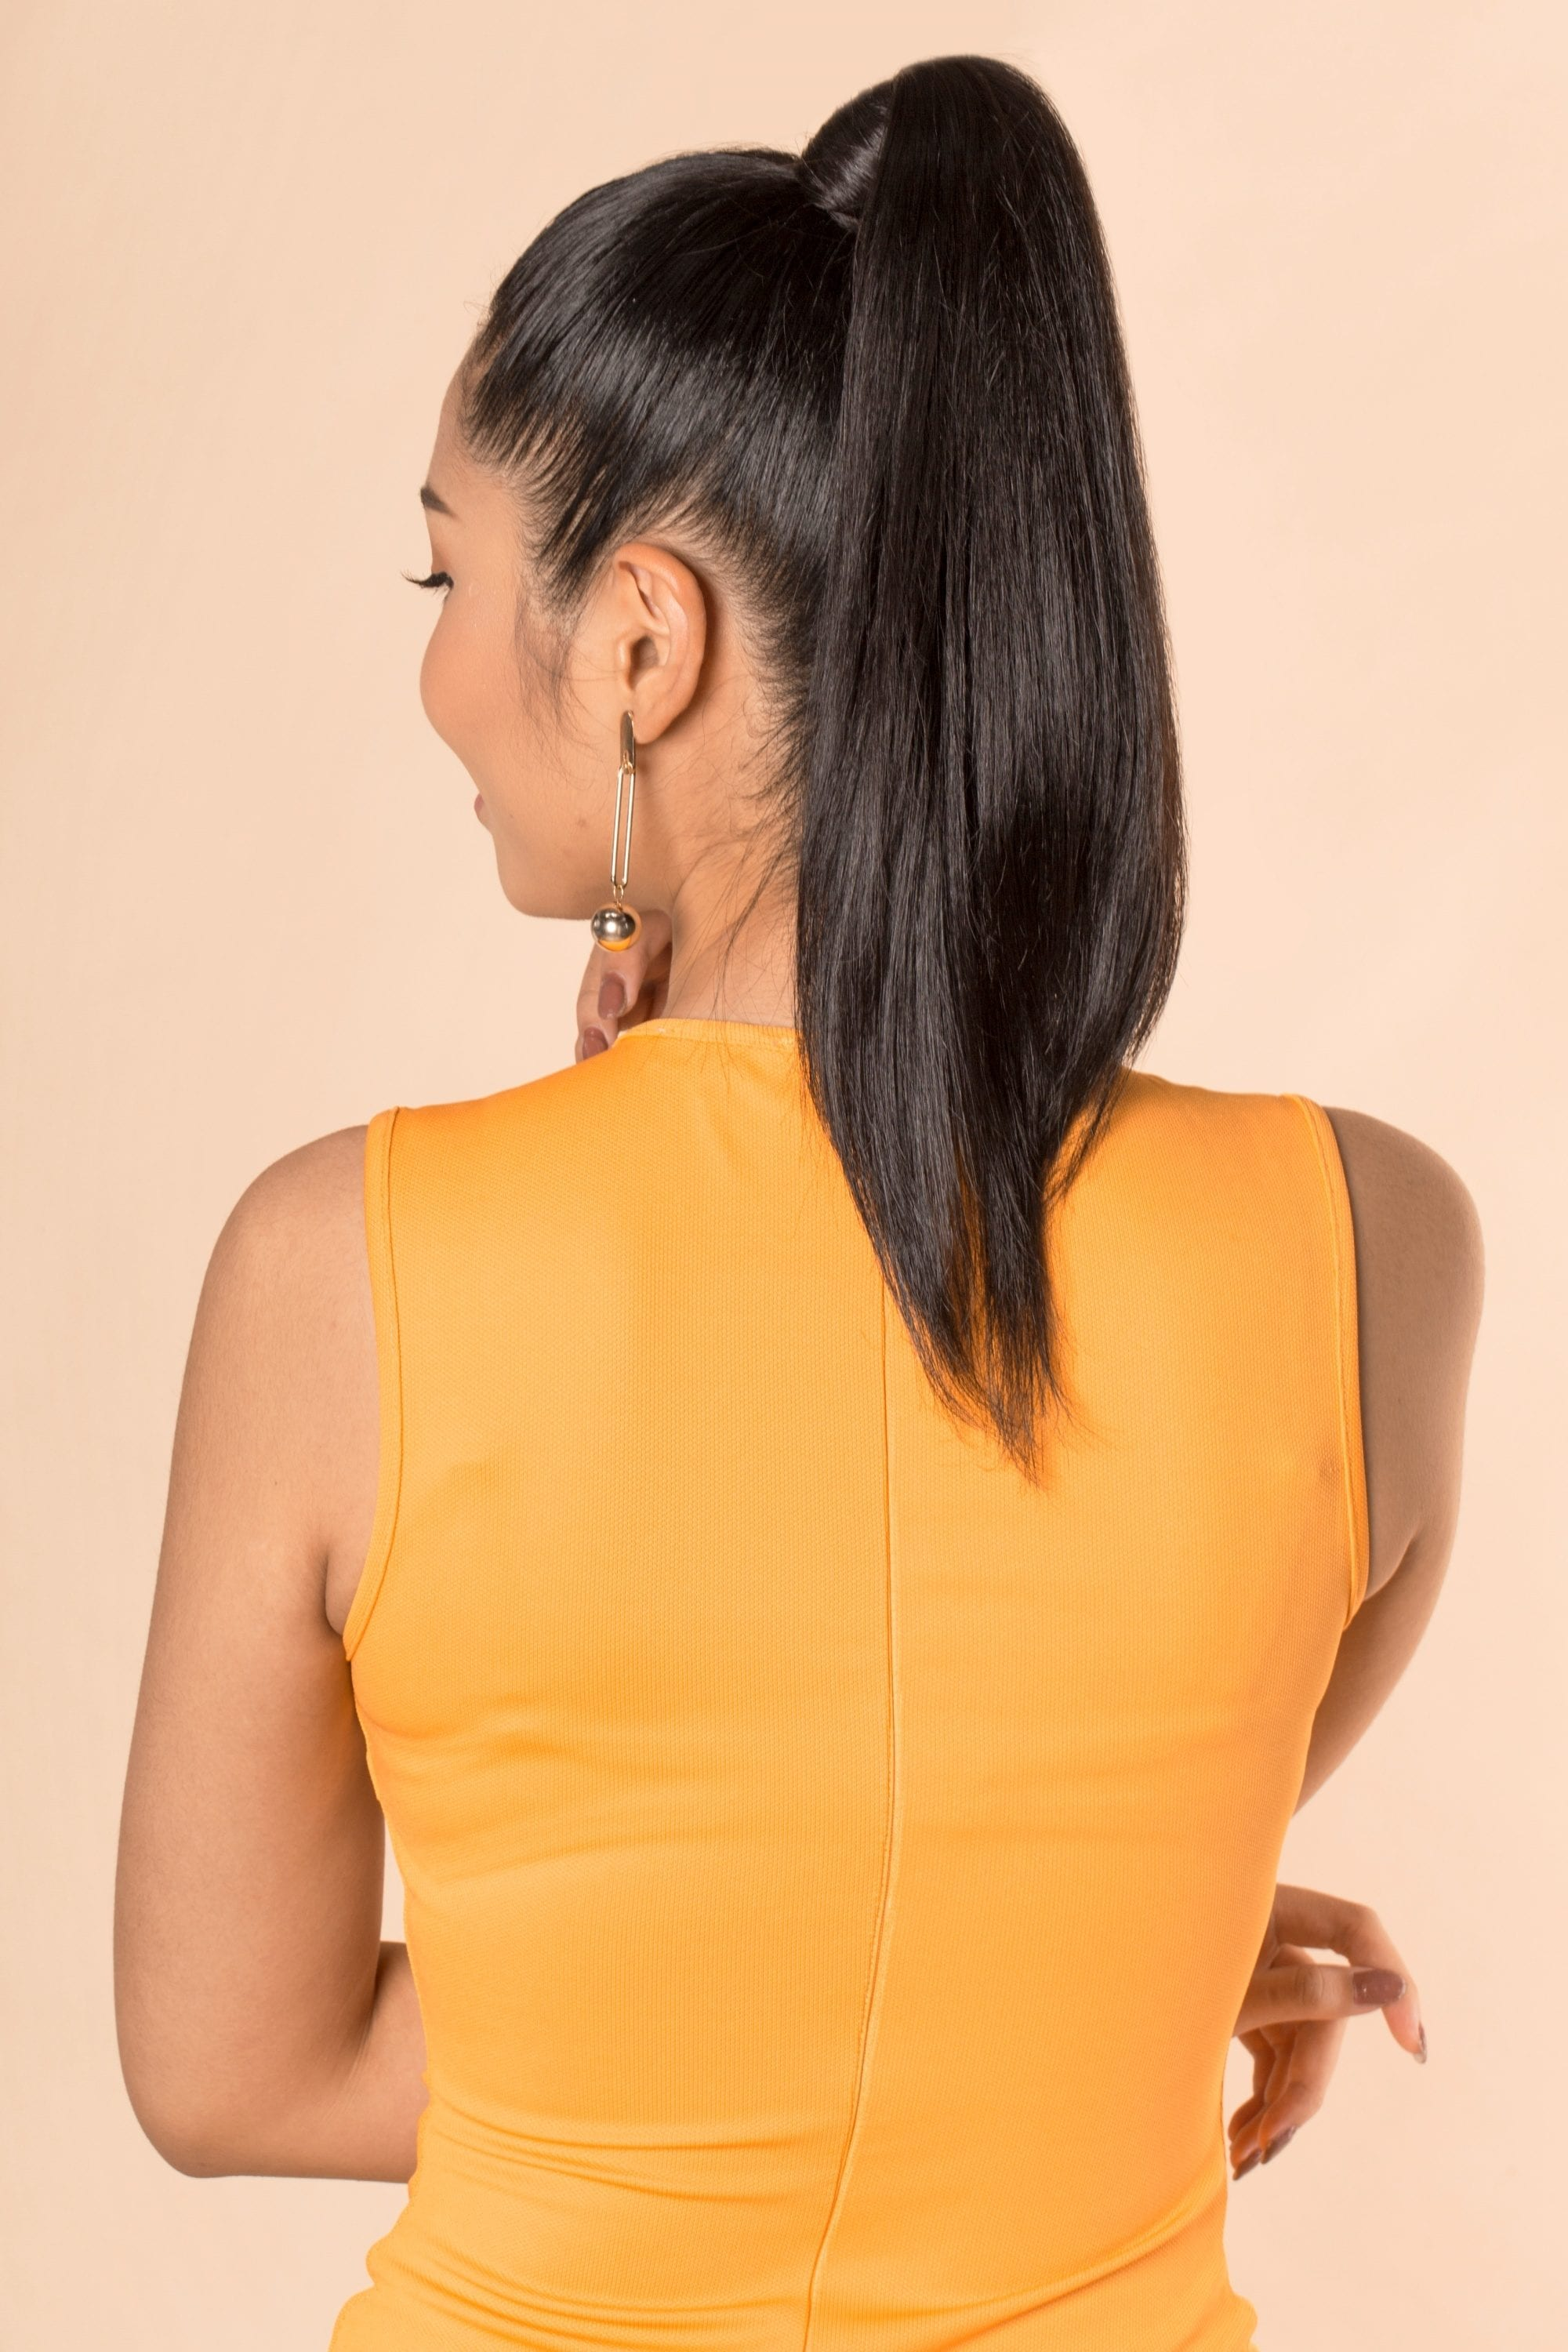 Asian woman with long black hair in a high ponytail